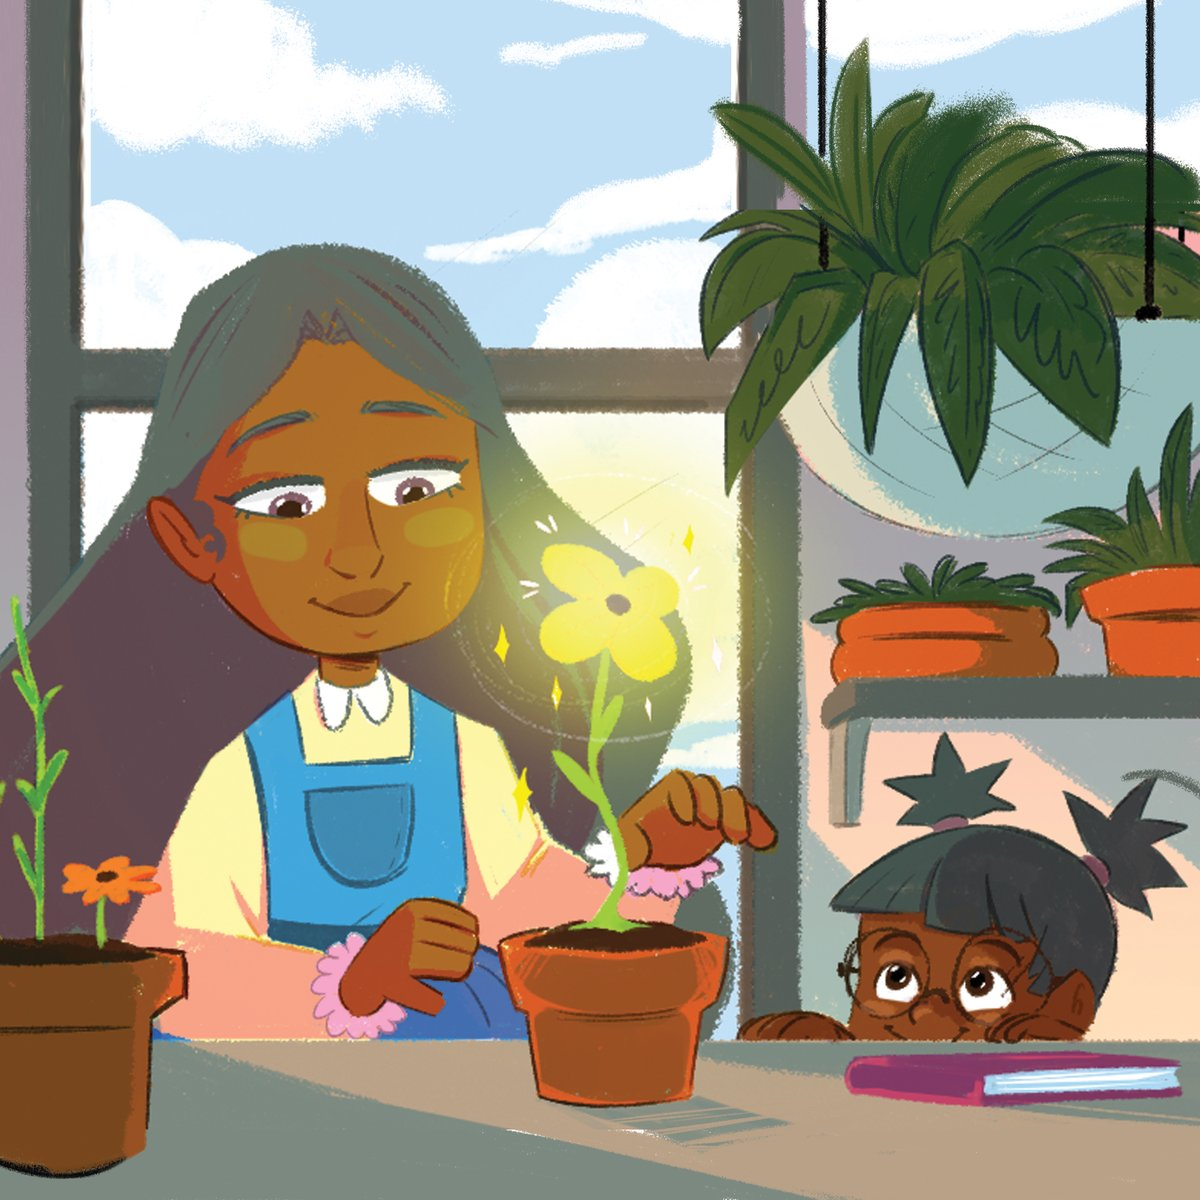 @kianamaiart Thanks for this Kiana. Sending u hugs!  I'm Pearl! I'm a Chinese-Jamaican Storyboard & comics artist, & (children's) illustrator! I enjoy being part of creating stories about self-love (#HairLove✨), culture & magic!   ✉️pearllow2@gmail.com